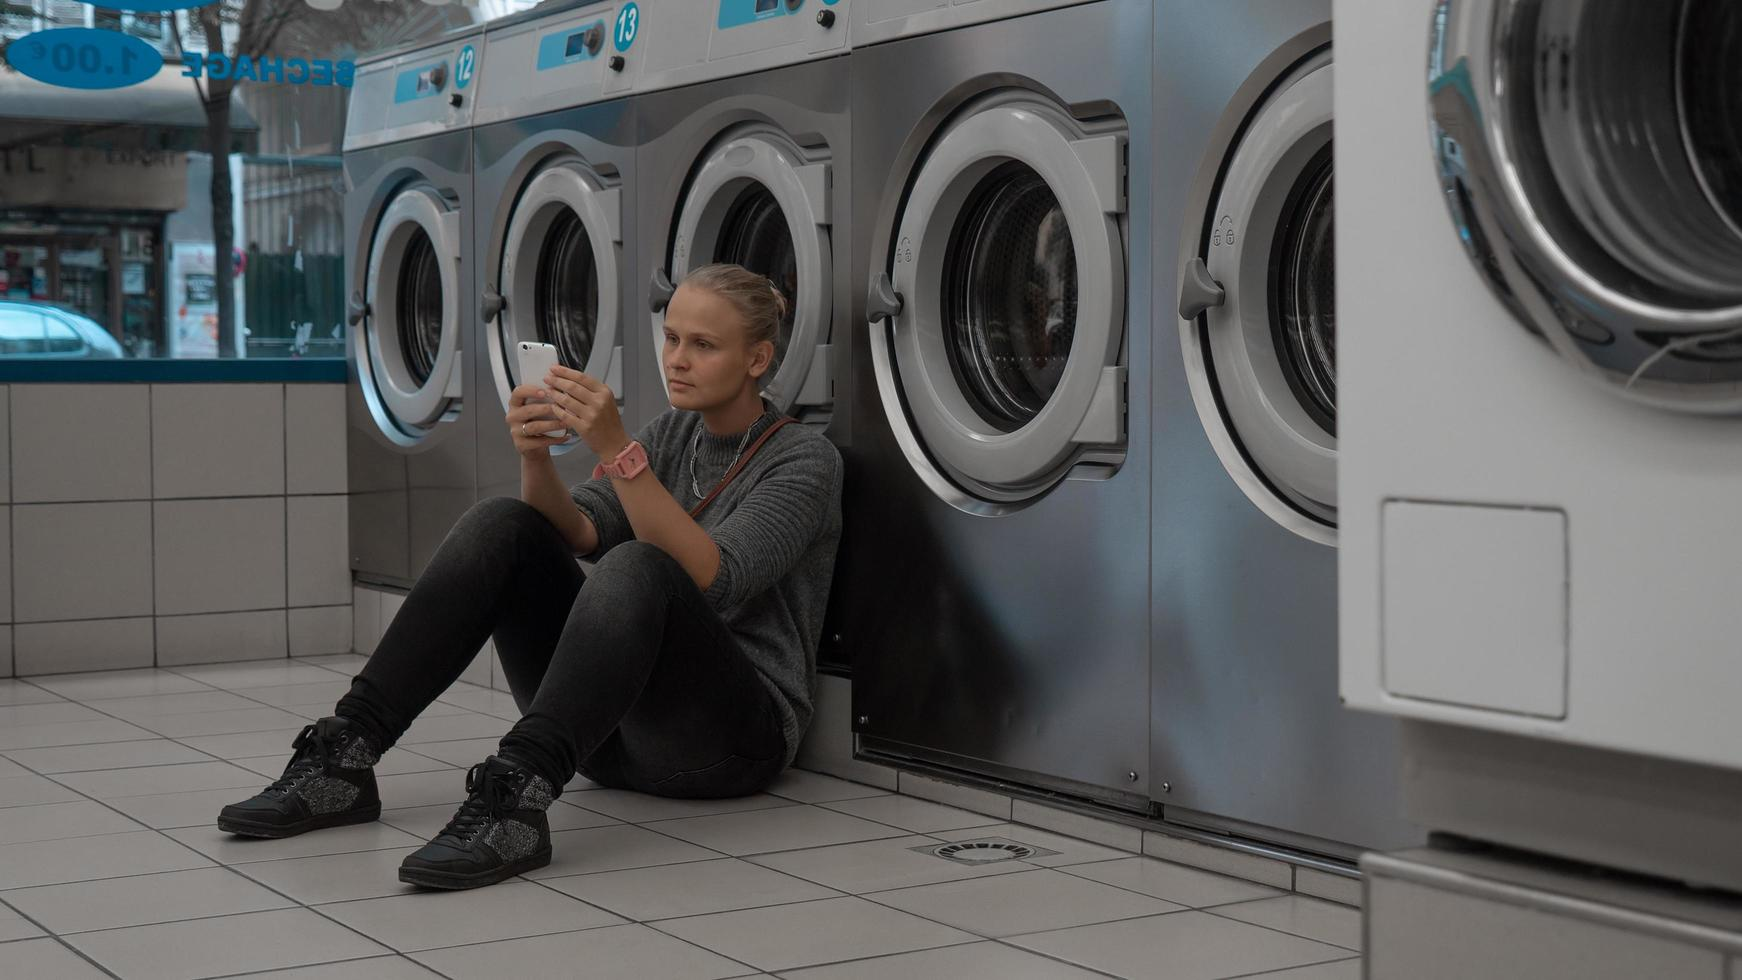 Woman on her phone at a laundromat photo